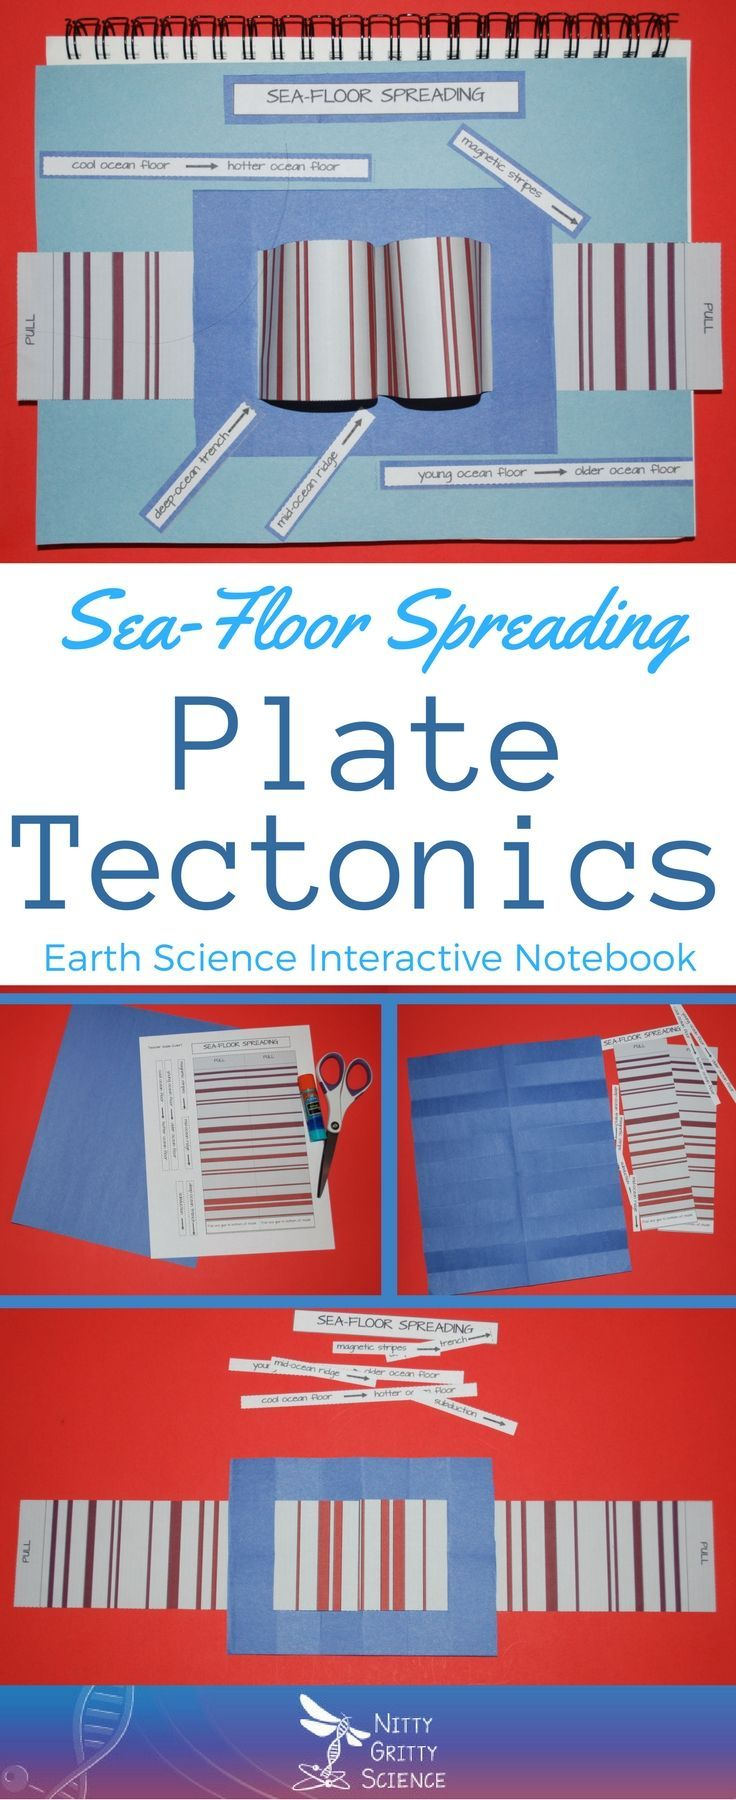 Plate Tectonics showcases many activities for the students (both middle and high school) to process the information given by teachers. The engaging activities vary to enable all students to use and benefit from different learning styles.